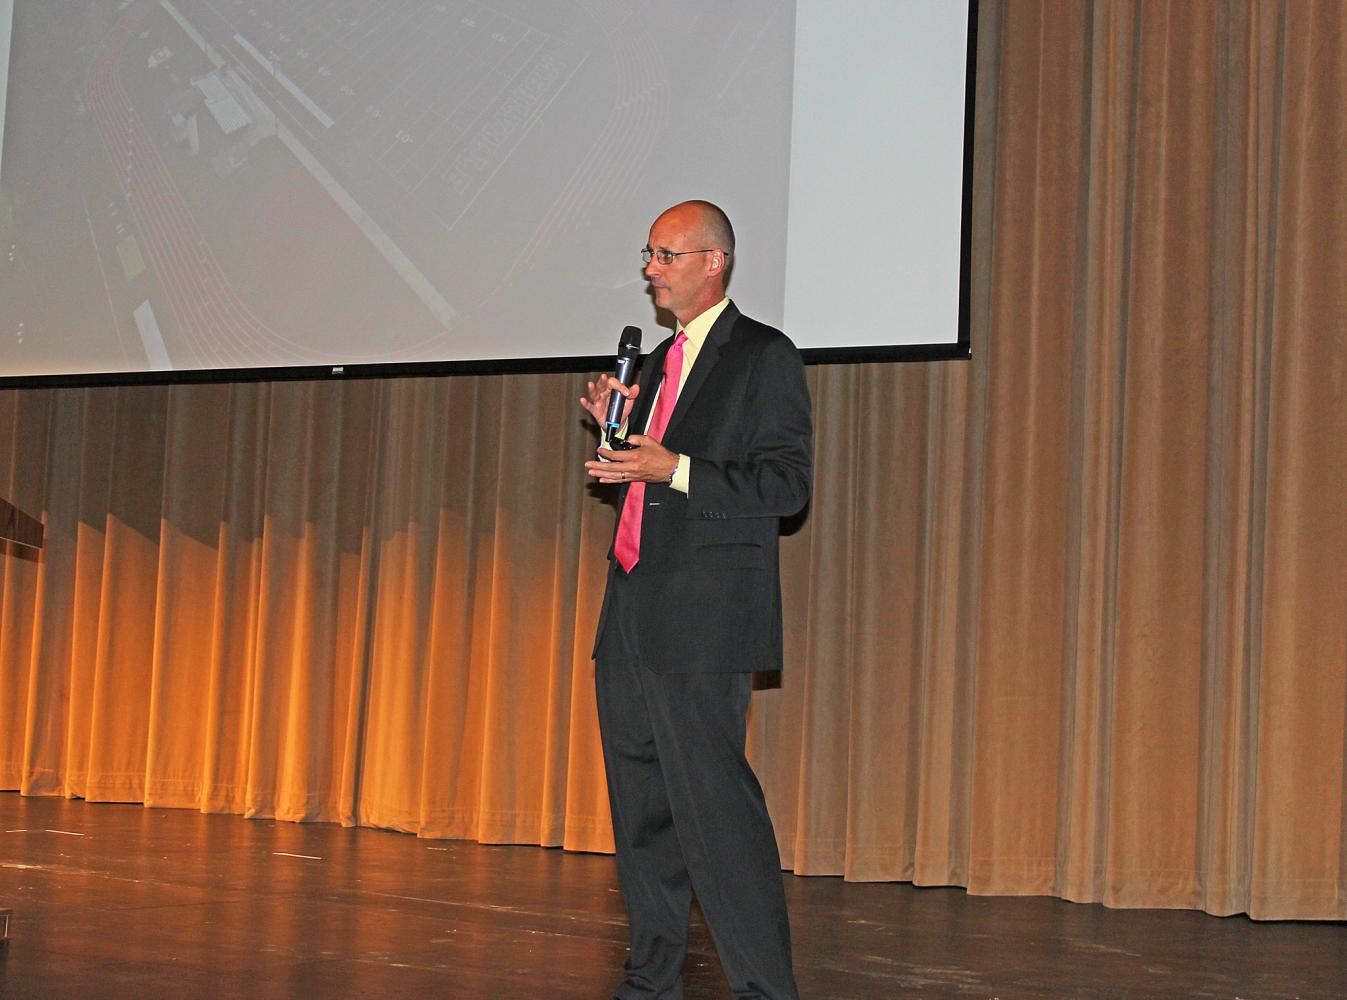 Mehlville superintendent Dr. Chris Gaines speaks of the current status and goals for the school district during his State of the District presentation on Monday, Sept. 18, in the Nottelmann Auditorium.